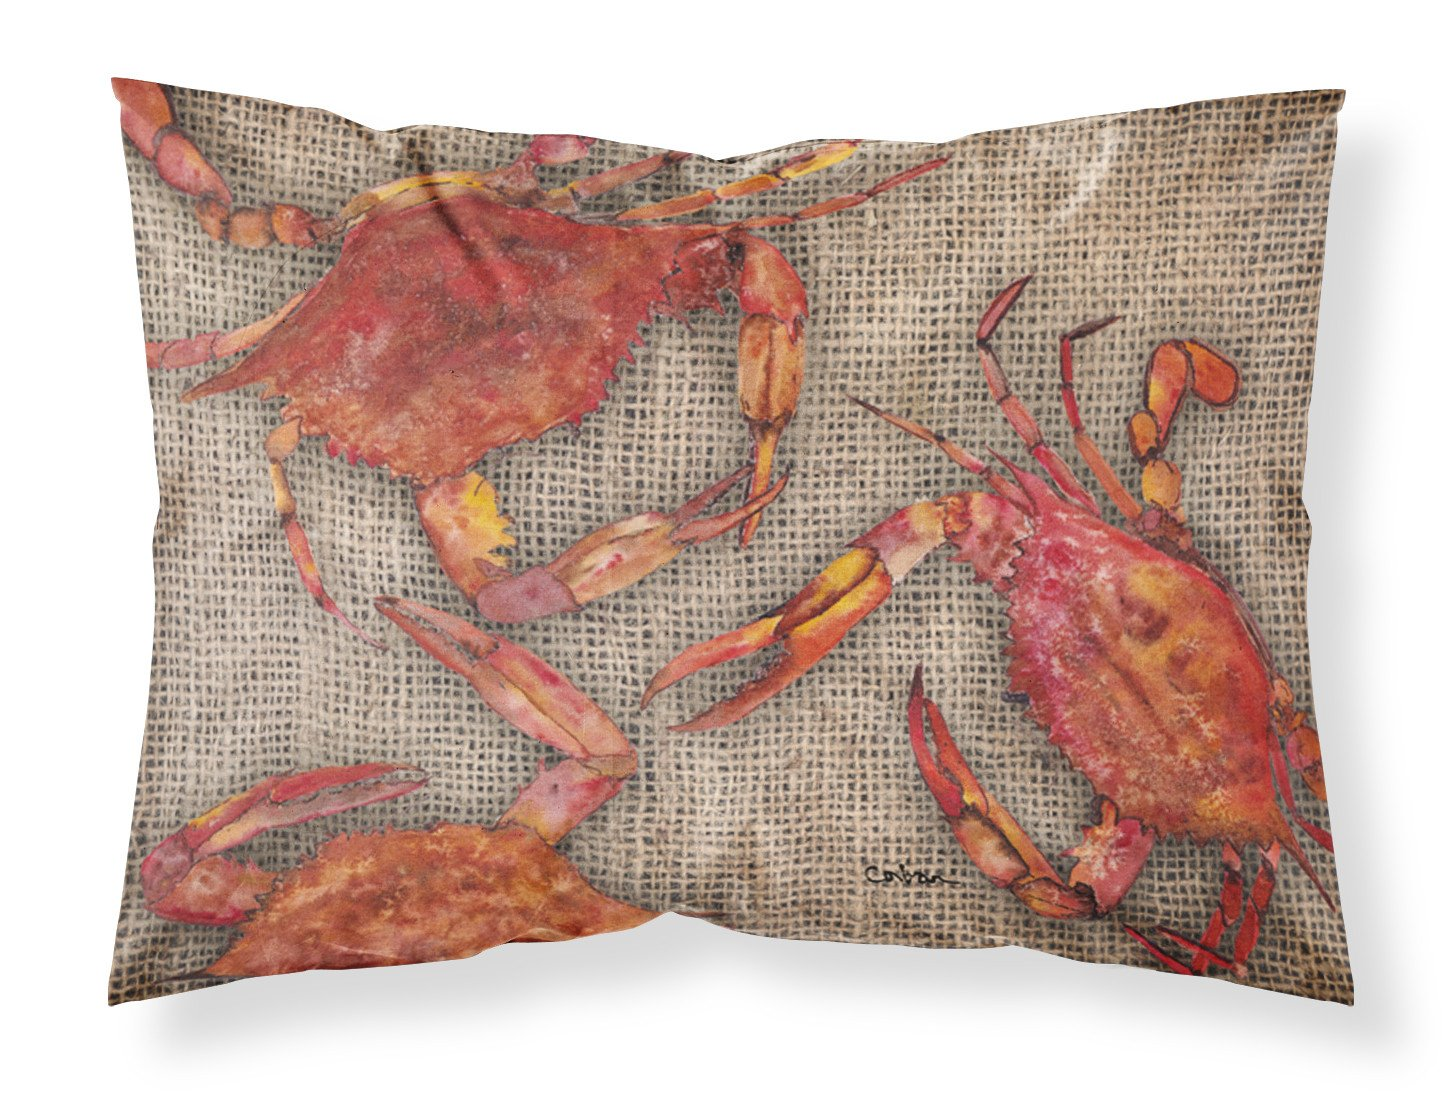 Buy this Cooked Crabs on Faux Burlap Moisture wicking Fabric standard pillowcase